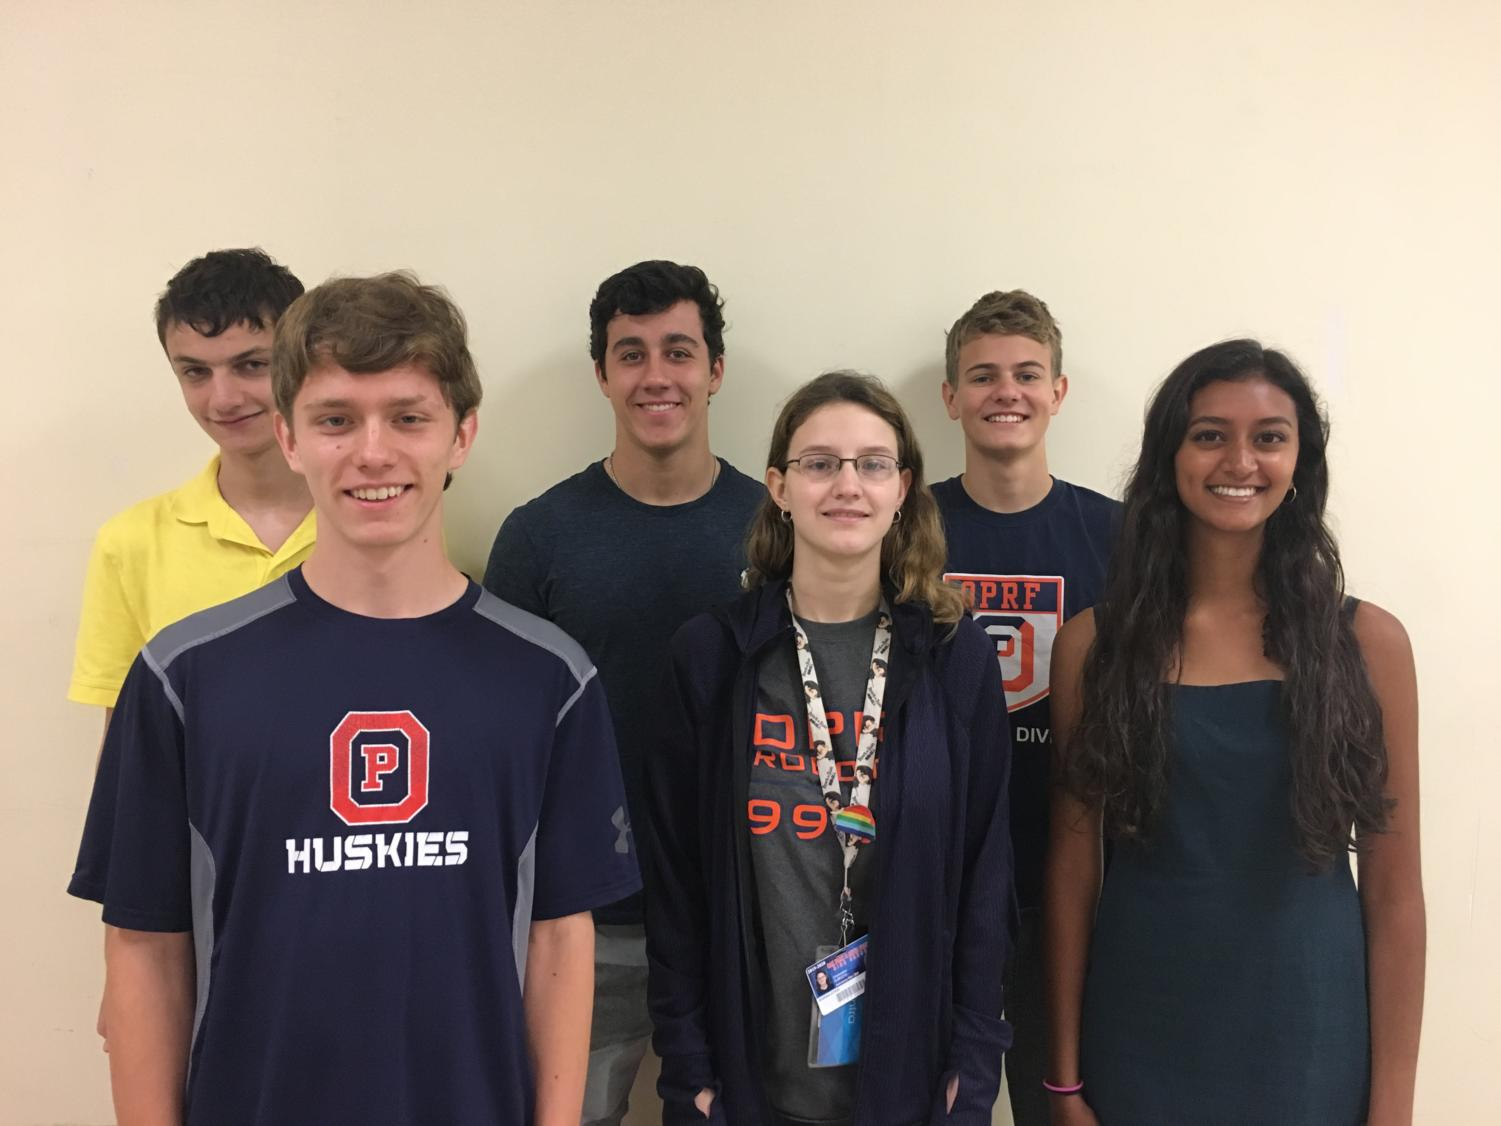 From left to right: Finn Greenstone, Garret Credi, William Farren, Marina Atkin, Daniel Roberts, and Priya Rawal